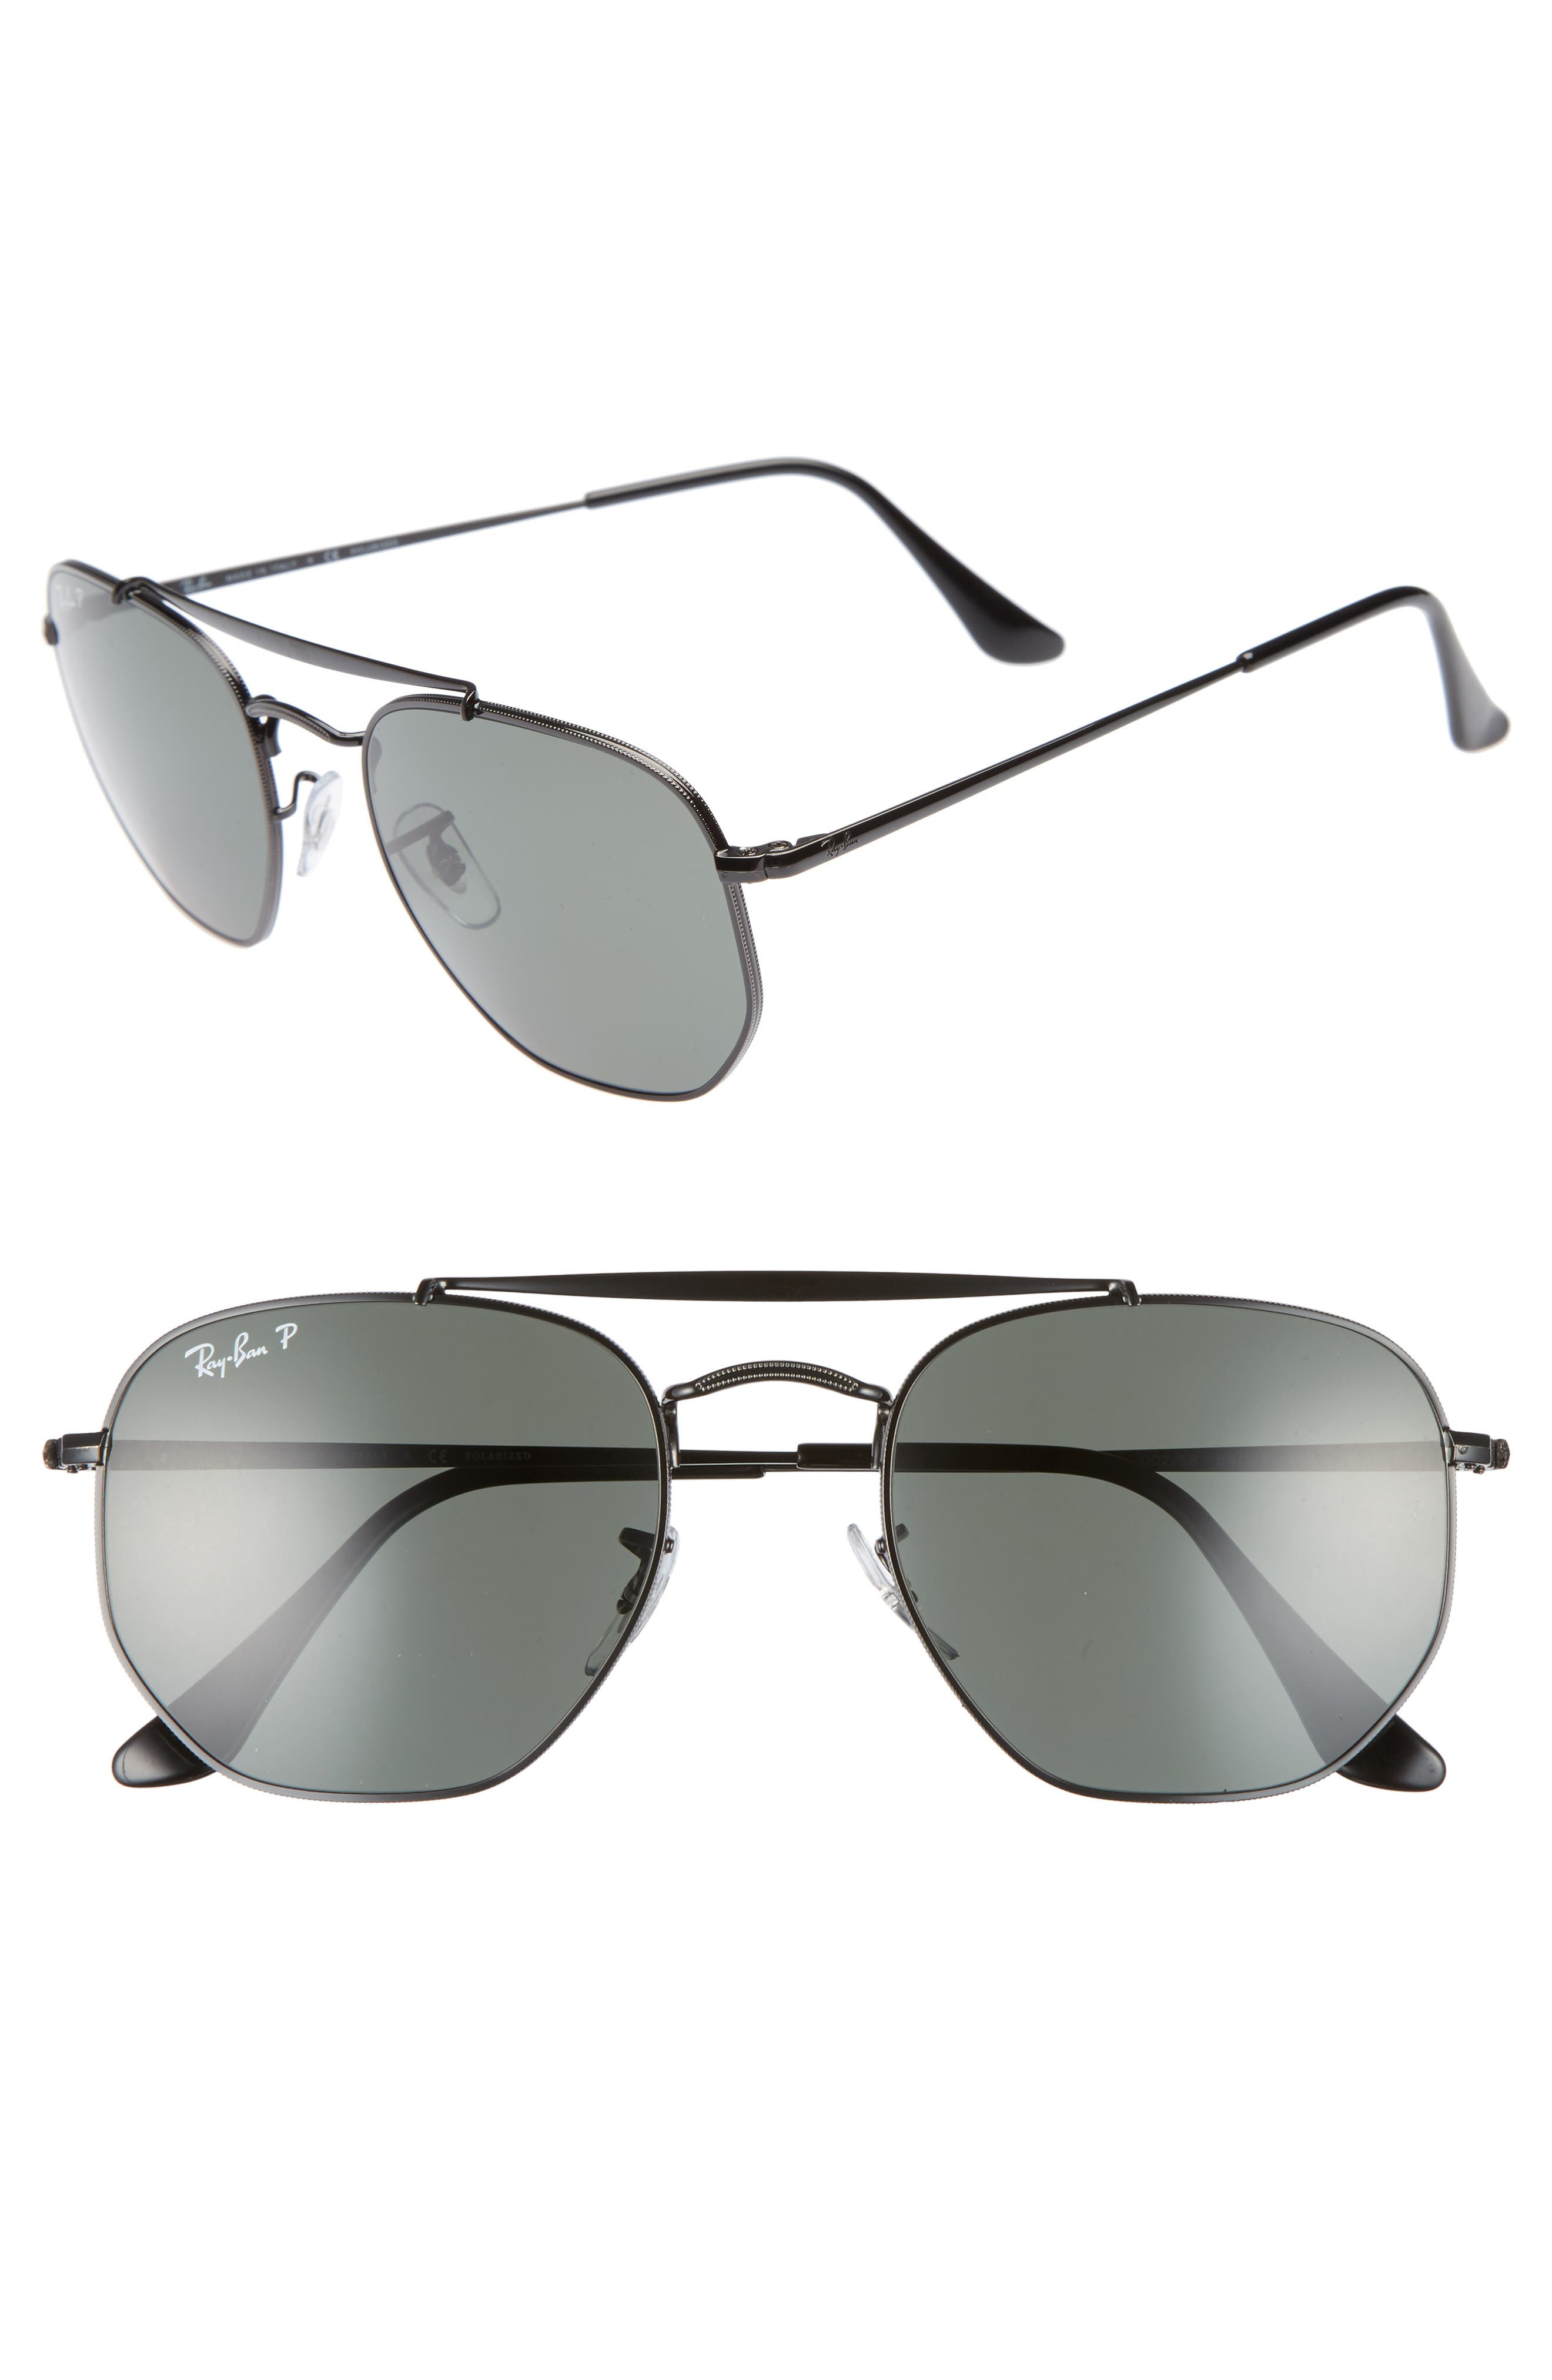 Marshal 54mm Polarized Aviator Sunglasses,                             Main thumbnail 1, color,                             BLACK POLARIZED